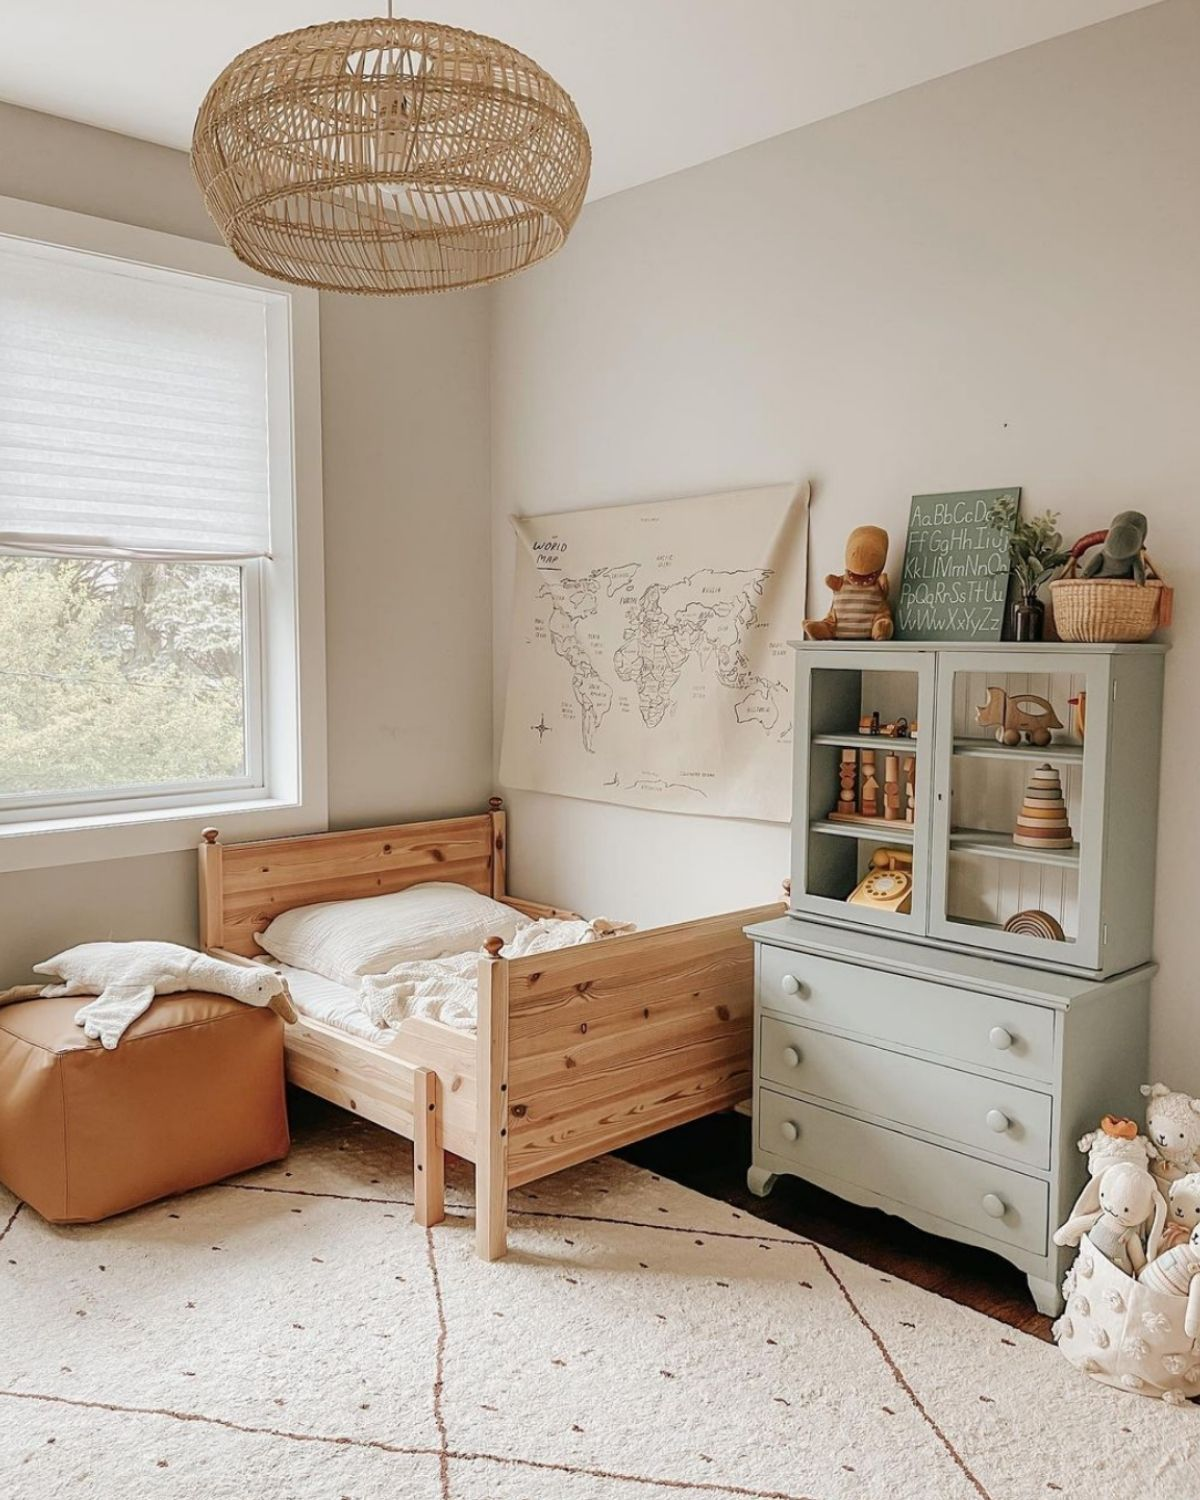 OLIVER'S ROOM by Nancy @__thenguyens - 4